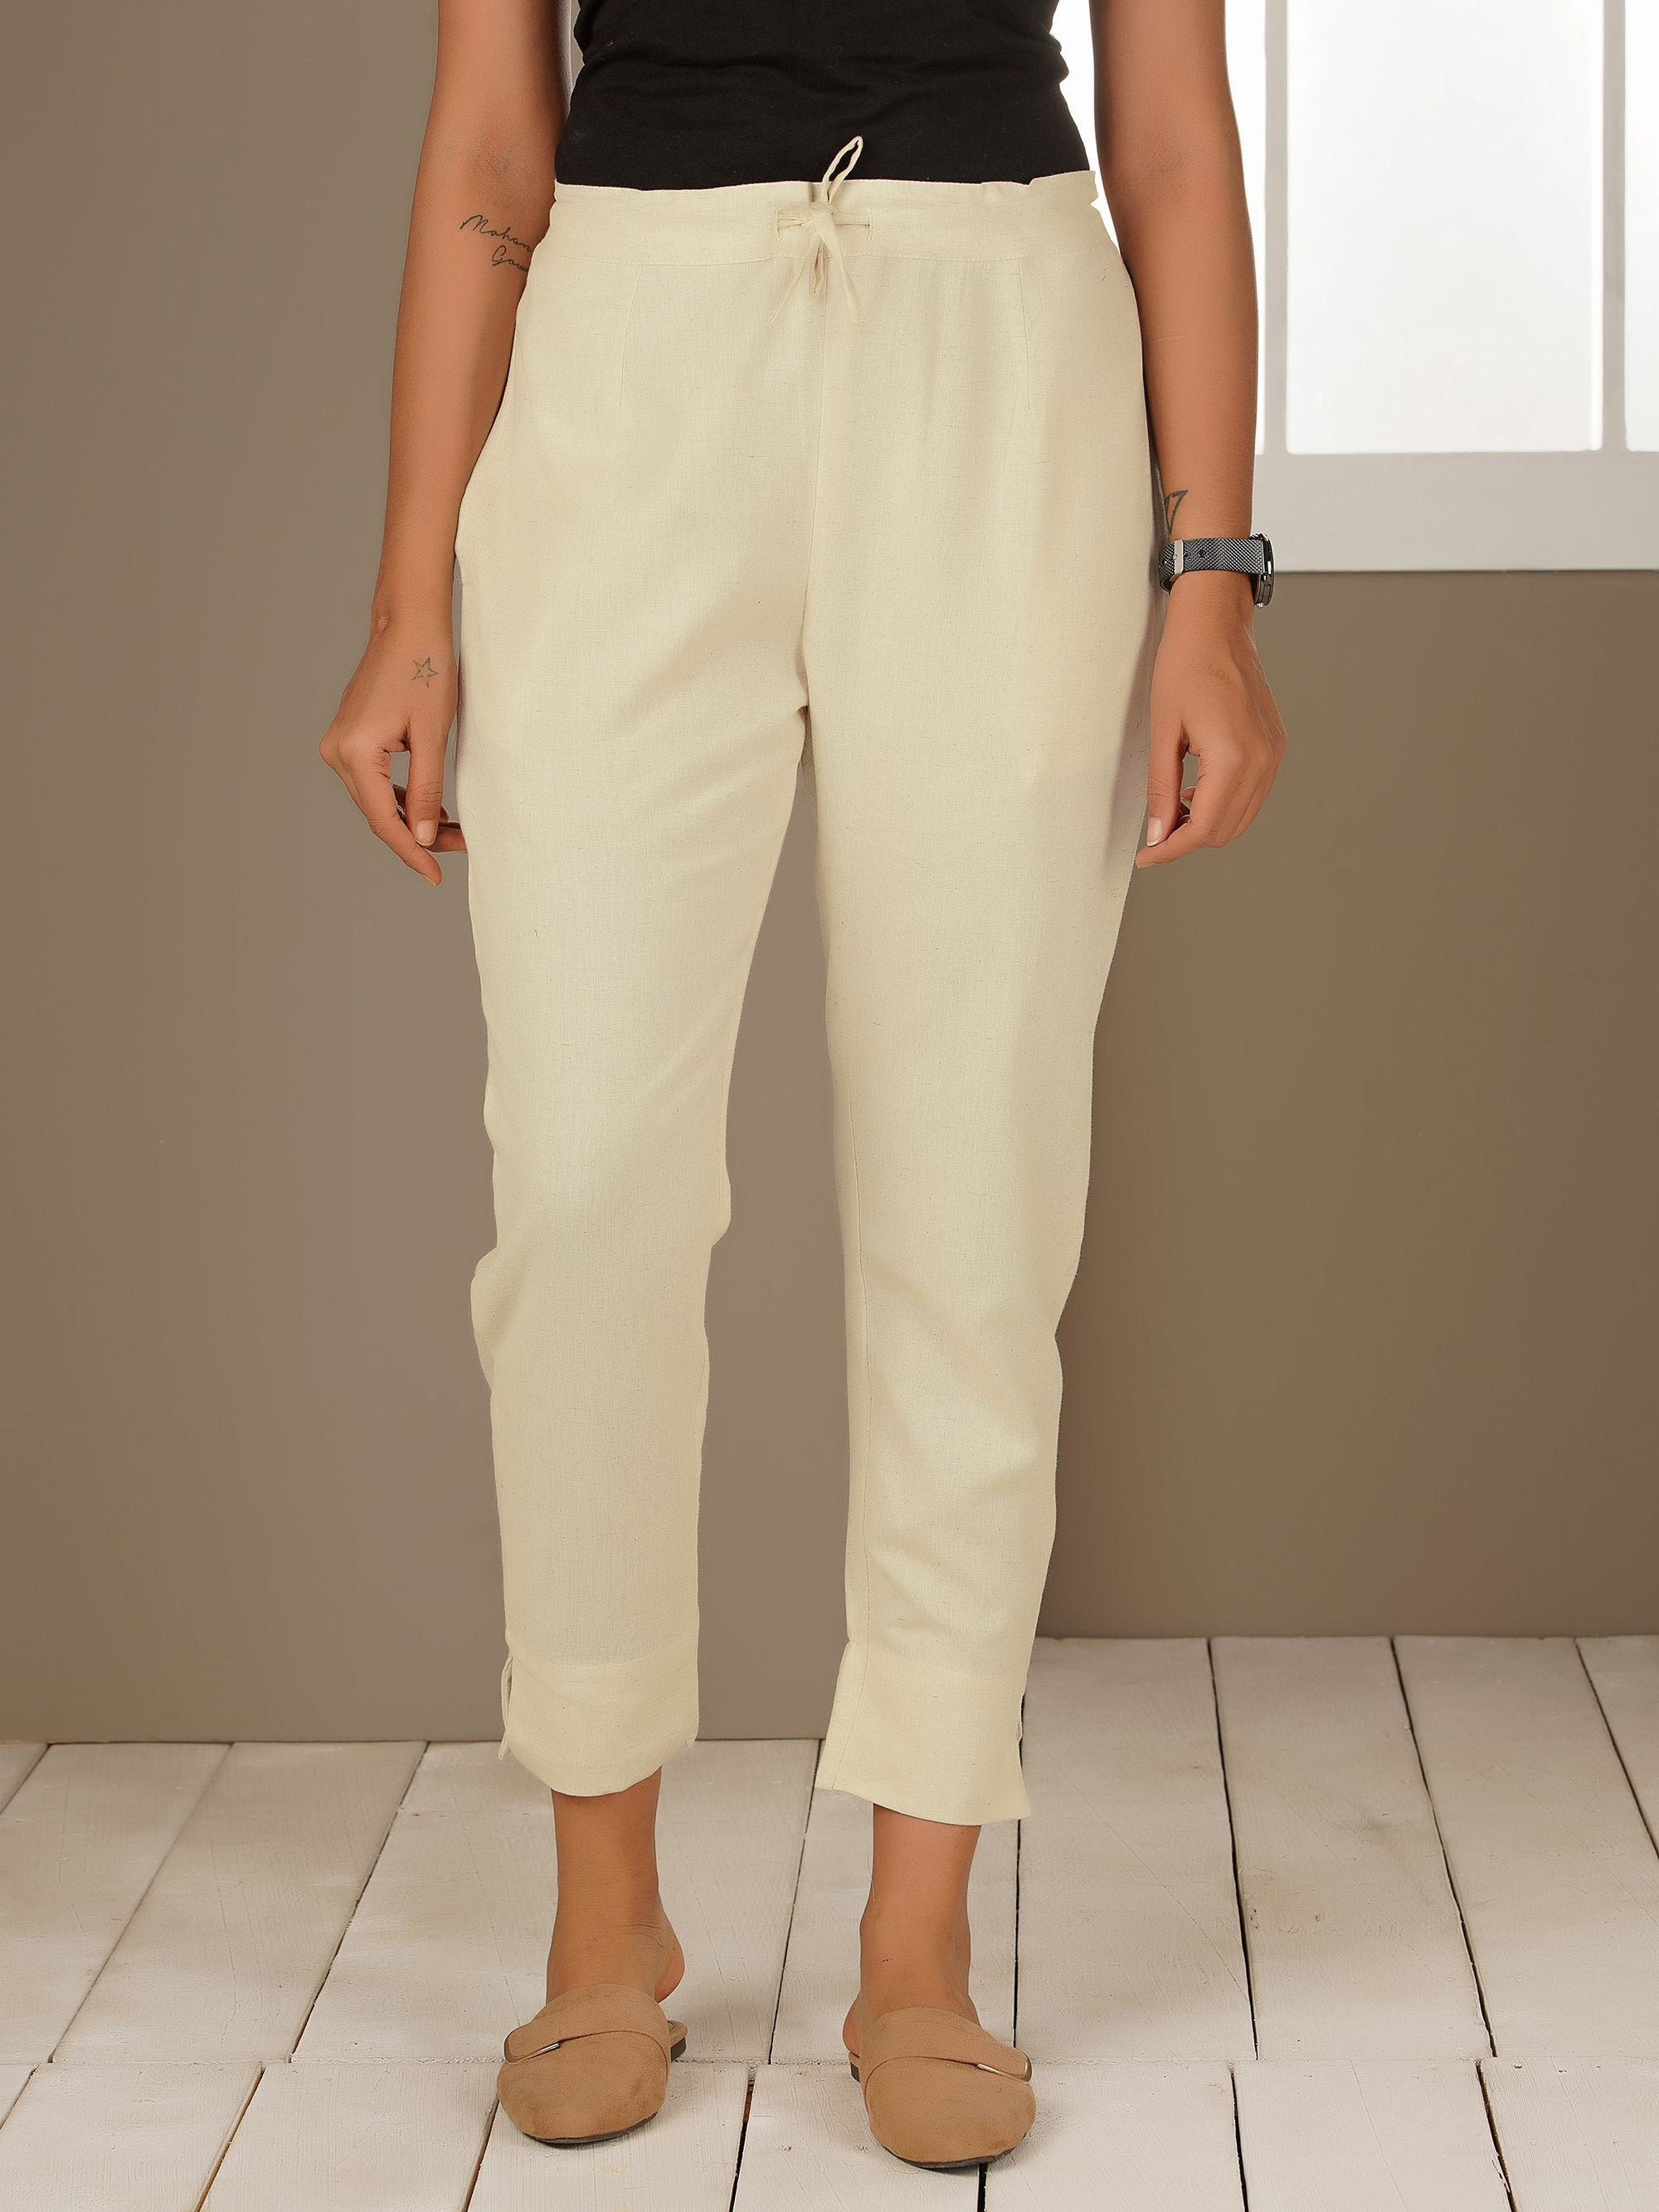 Tapered Cigarette Pants - White